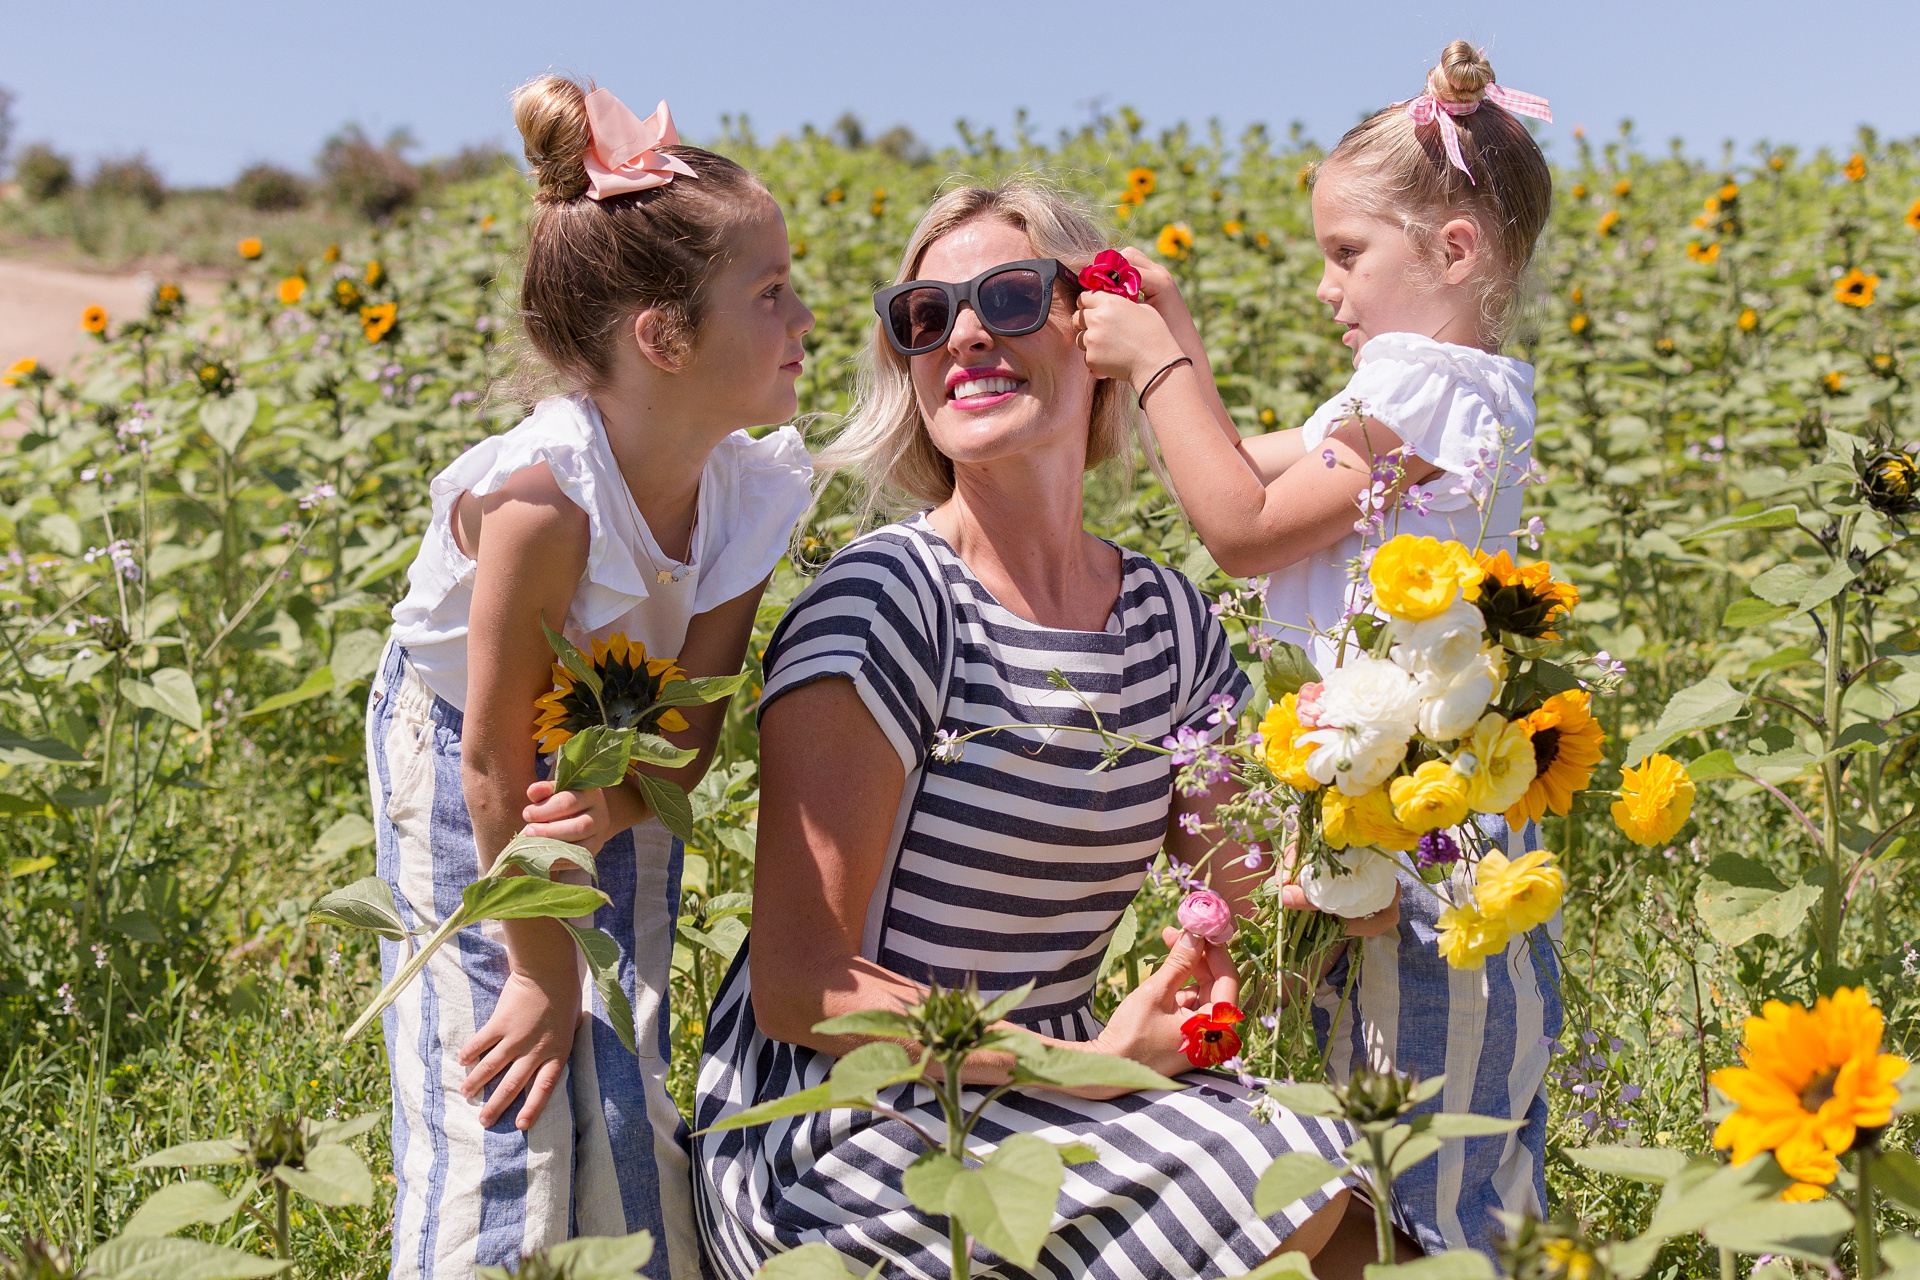 Blonde San Diego Mom in field of sunflowers wearing a striped dress wearing sunglasses smiling with her two young daughters